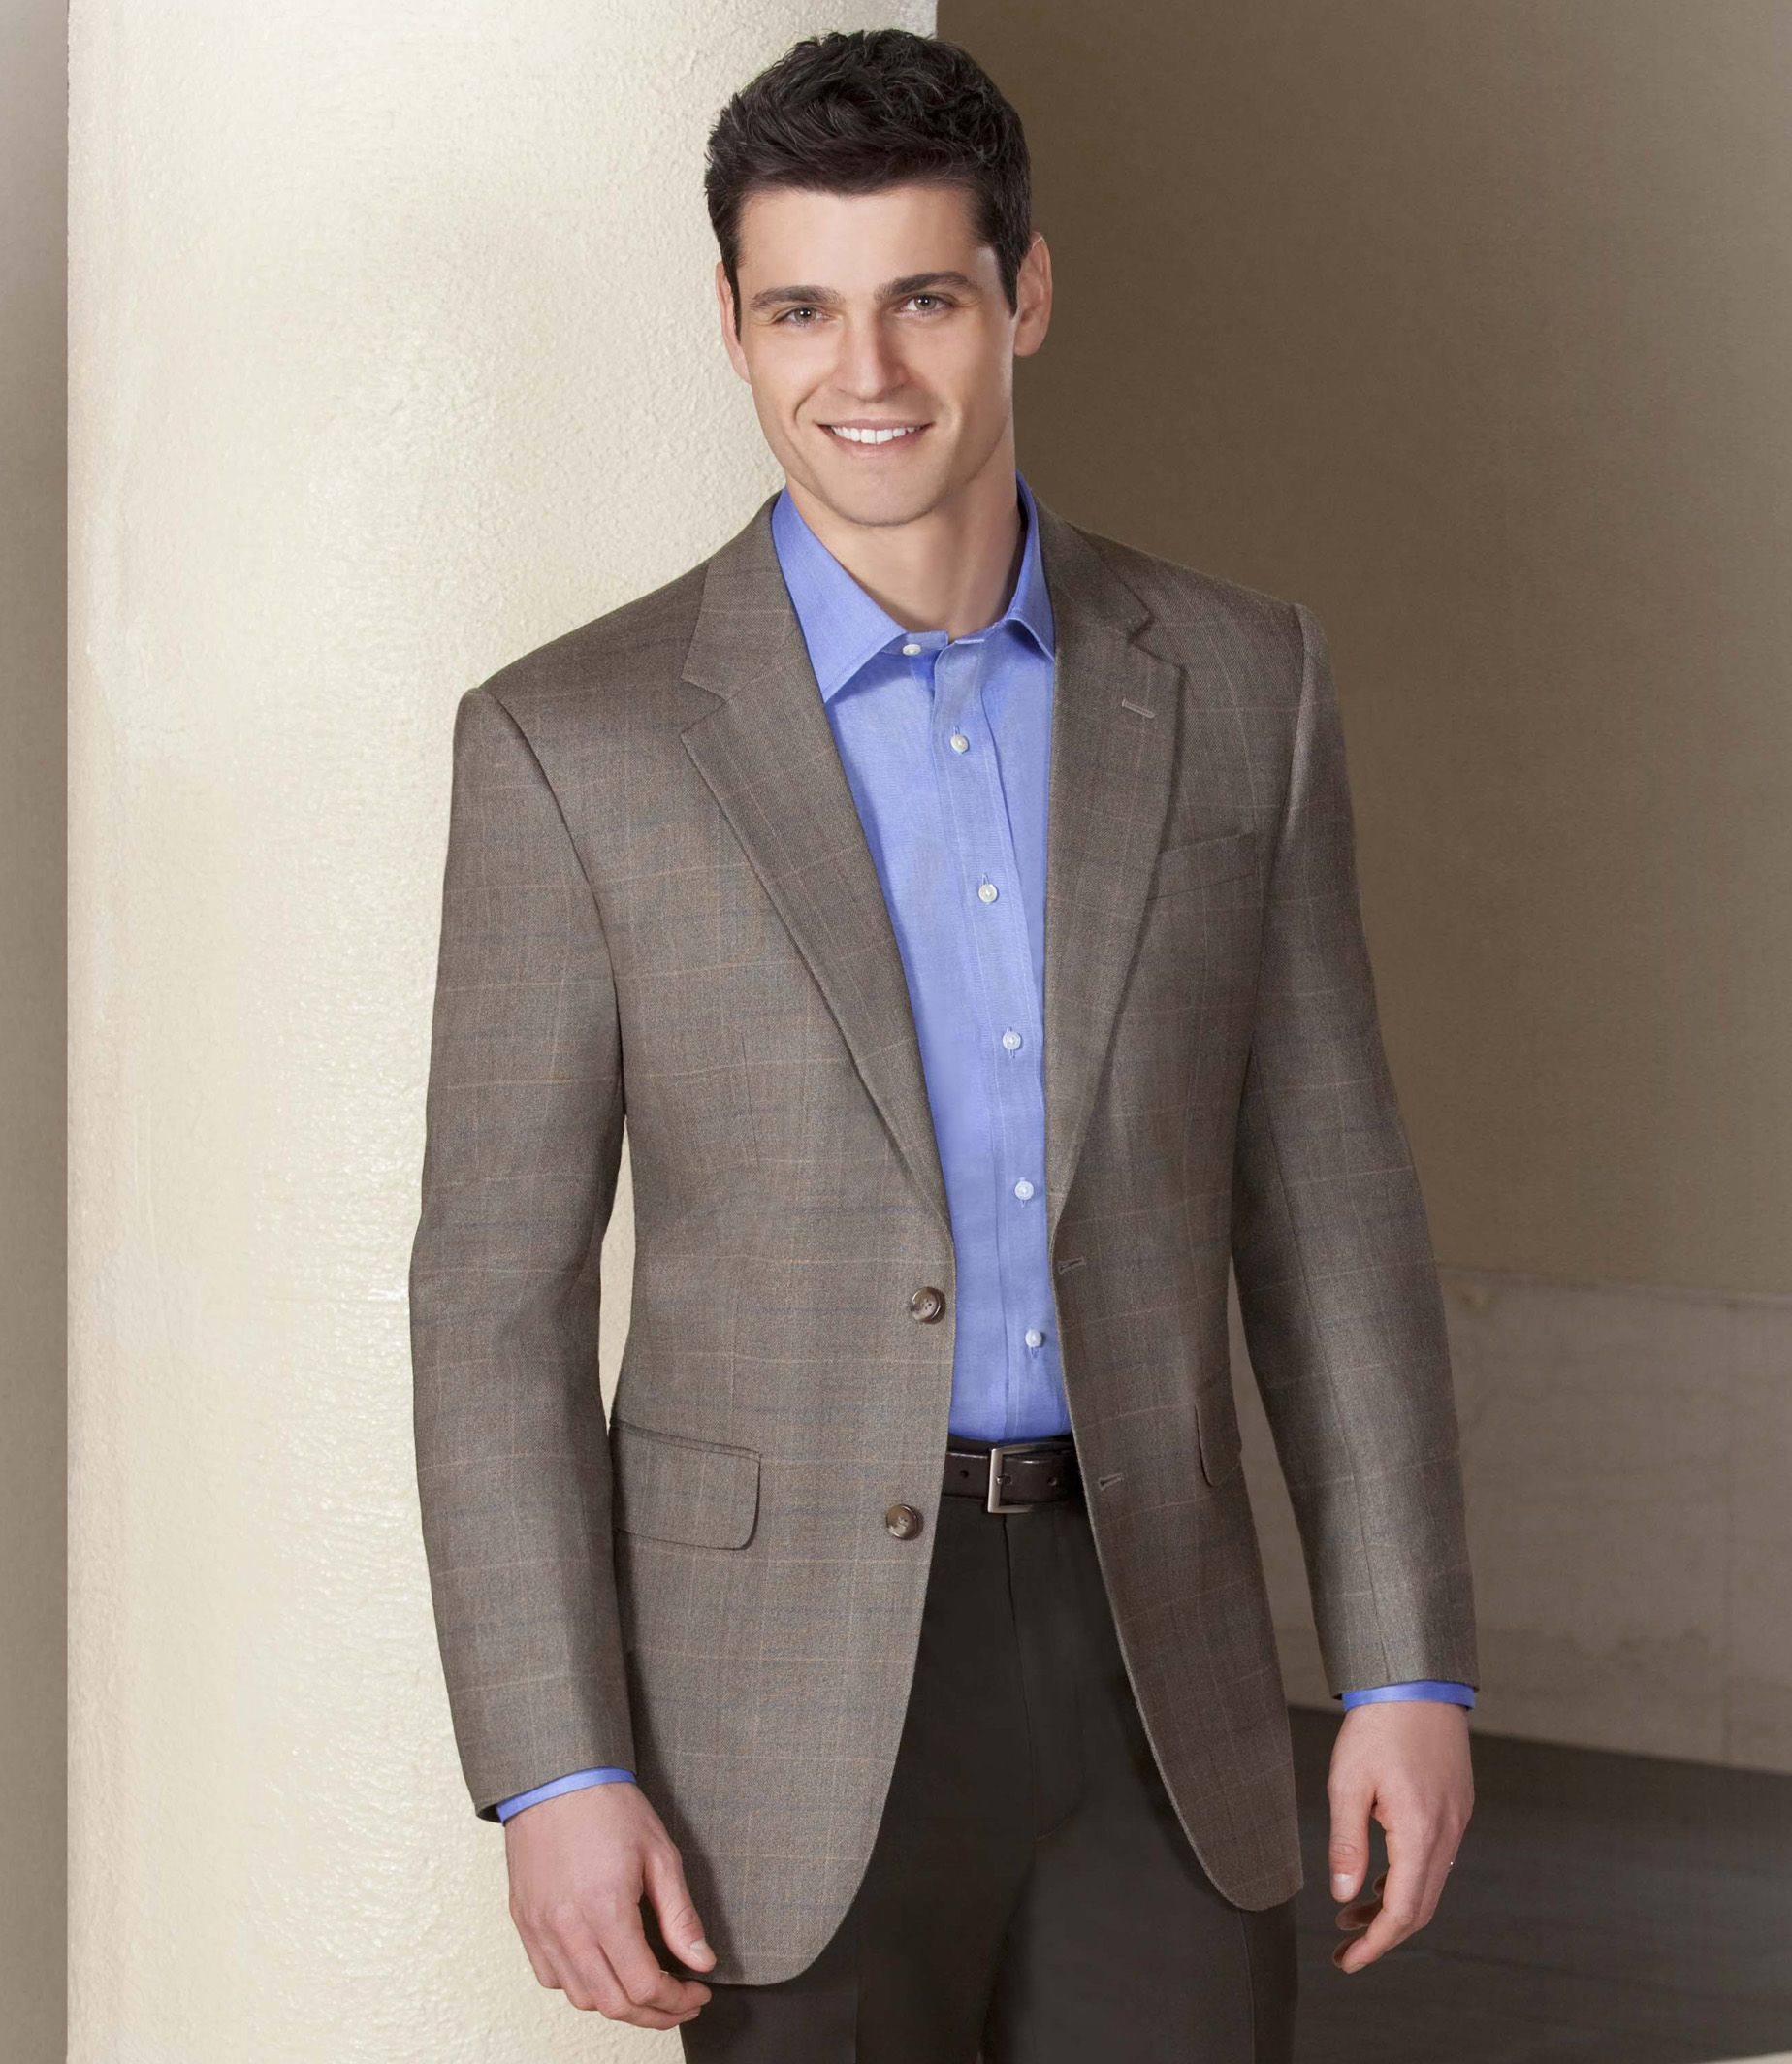 Clearance Sportcoats | Men's | JoS. A. Bank Clothiers